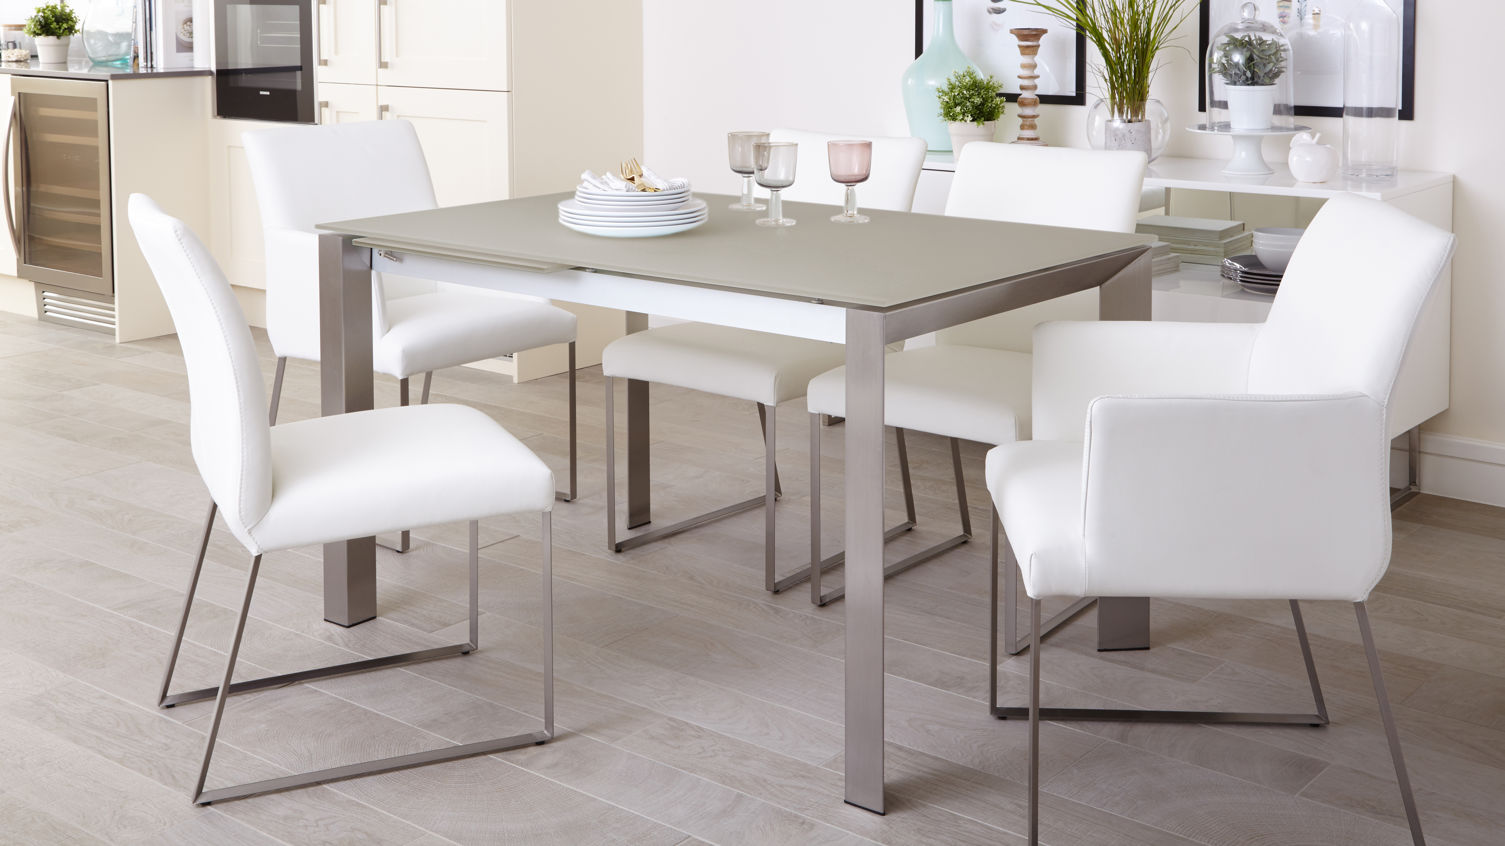 eve-grey-frosted-glass-with-brushed-stainless-steel-and-monti-leather-extending-dining-set-3